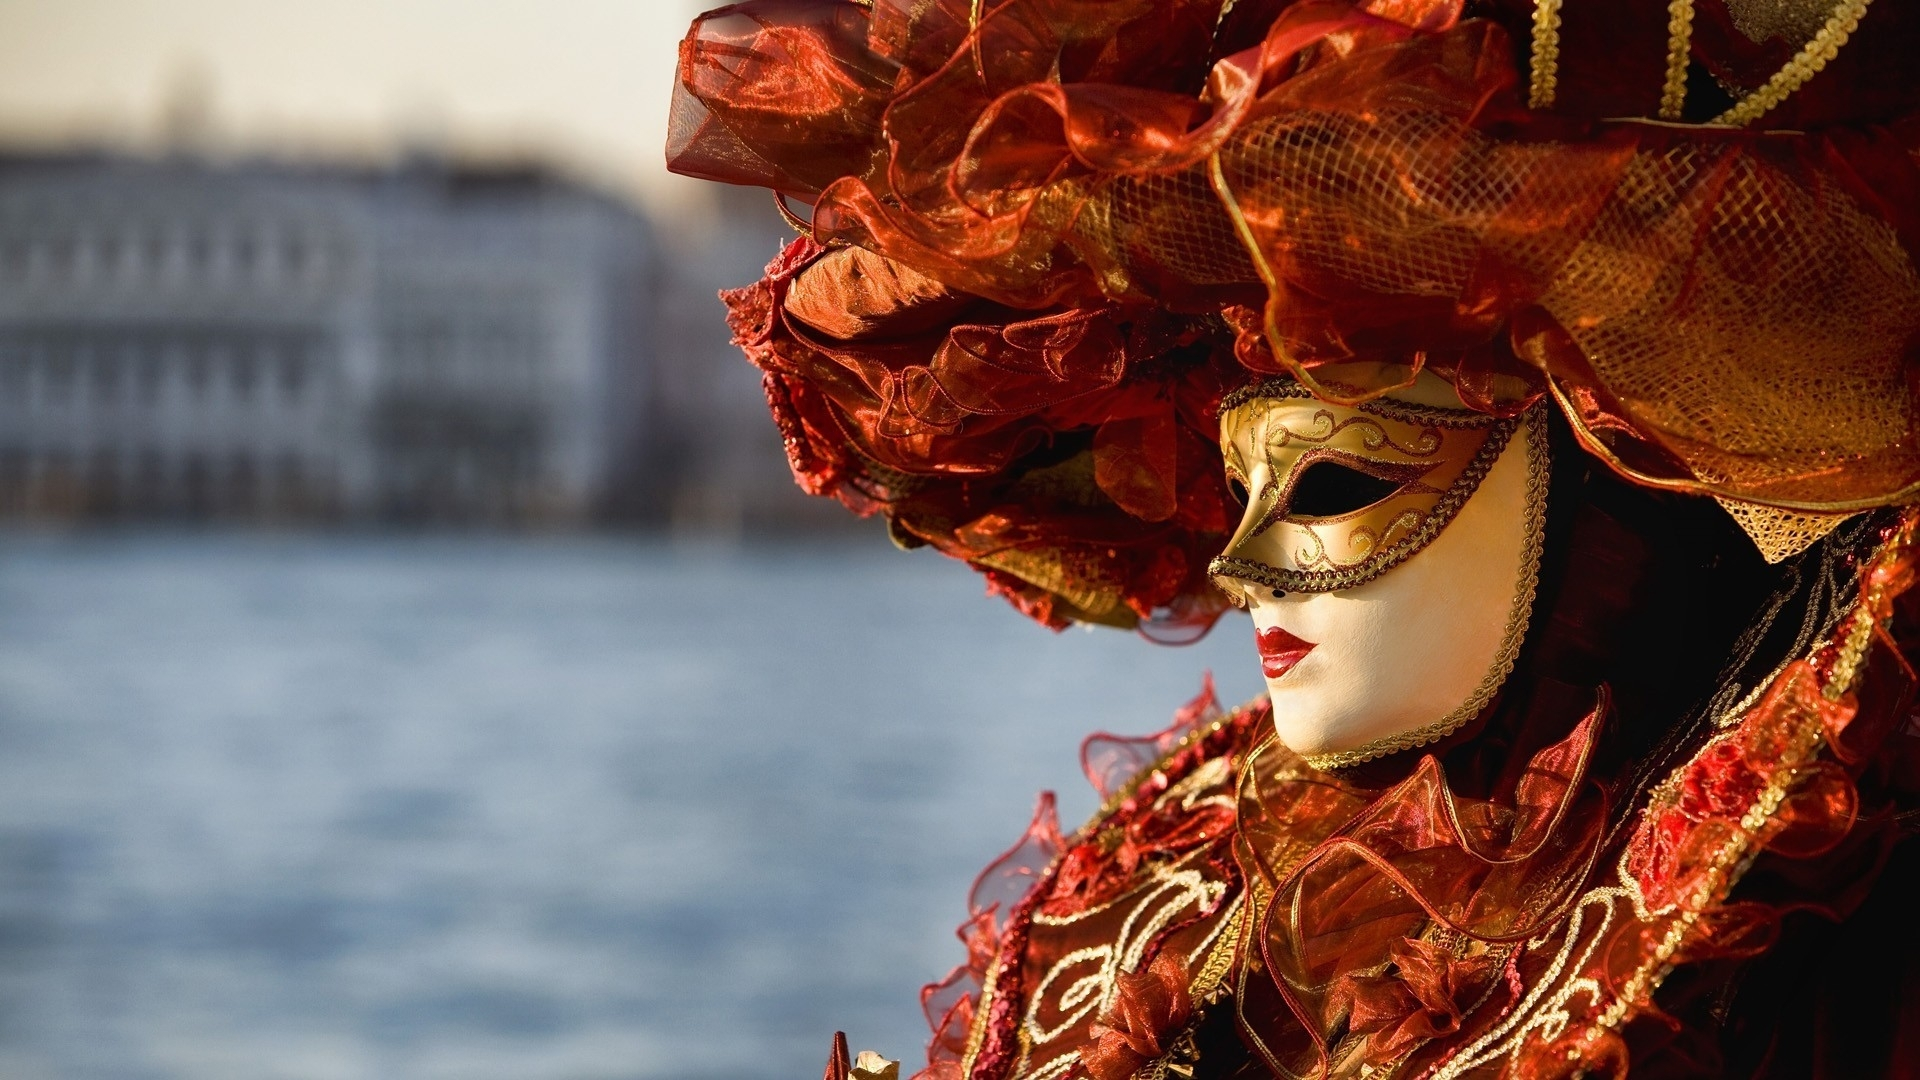 Evoking-Mardi-Gras-and-the-great-Carnivals-in-Rio-de-Janeiro-and-Venice-the-masks-in-this-theme-are-wallpaper-wpc9004739